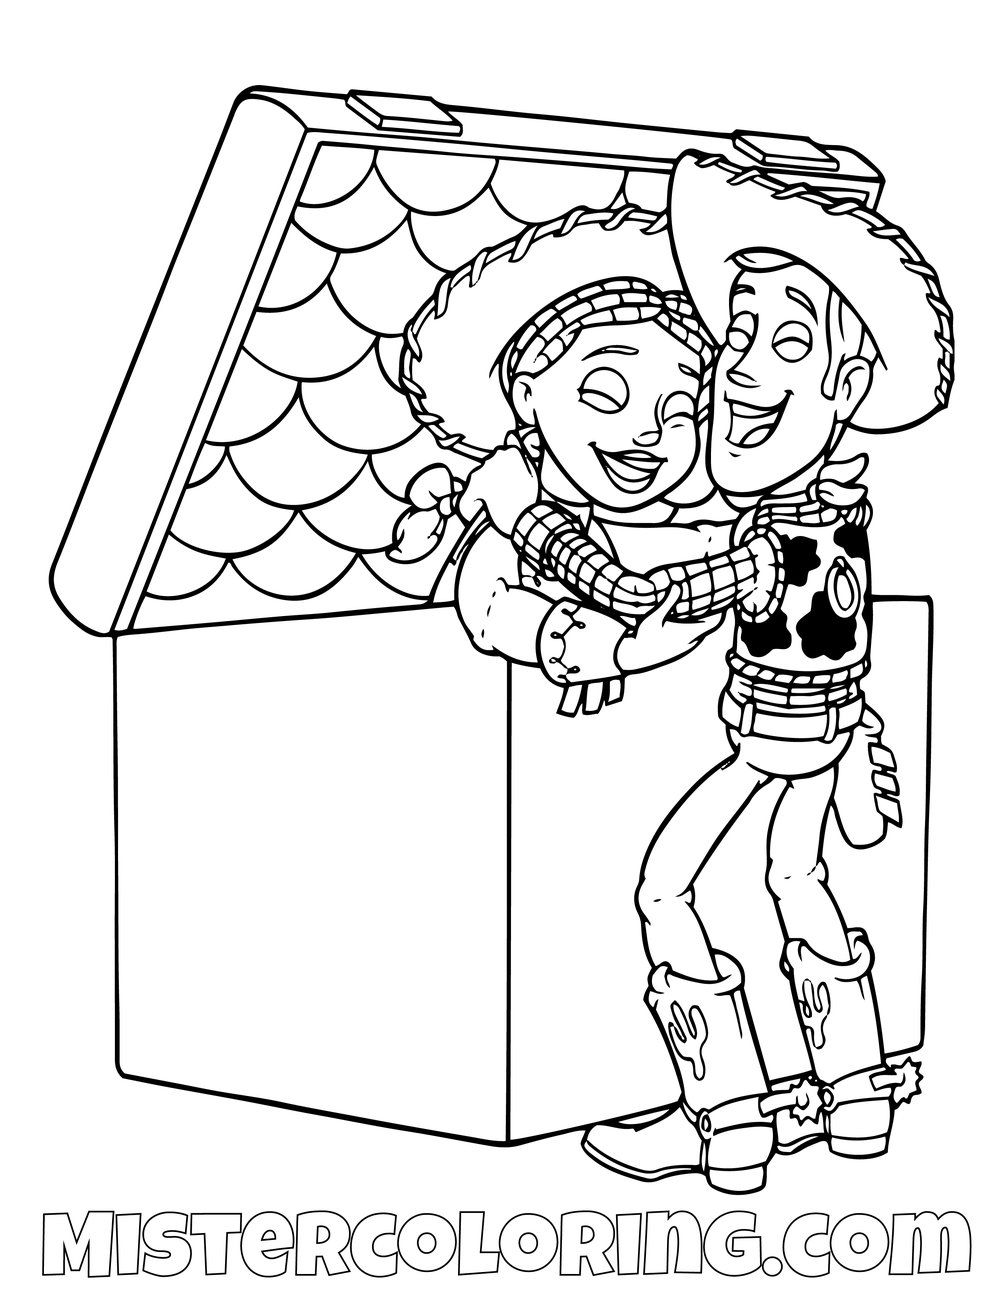 Sheriff Woody Taking Jessie Out A Box Toy Story Coloring Page